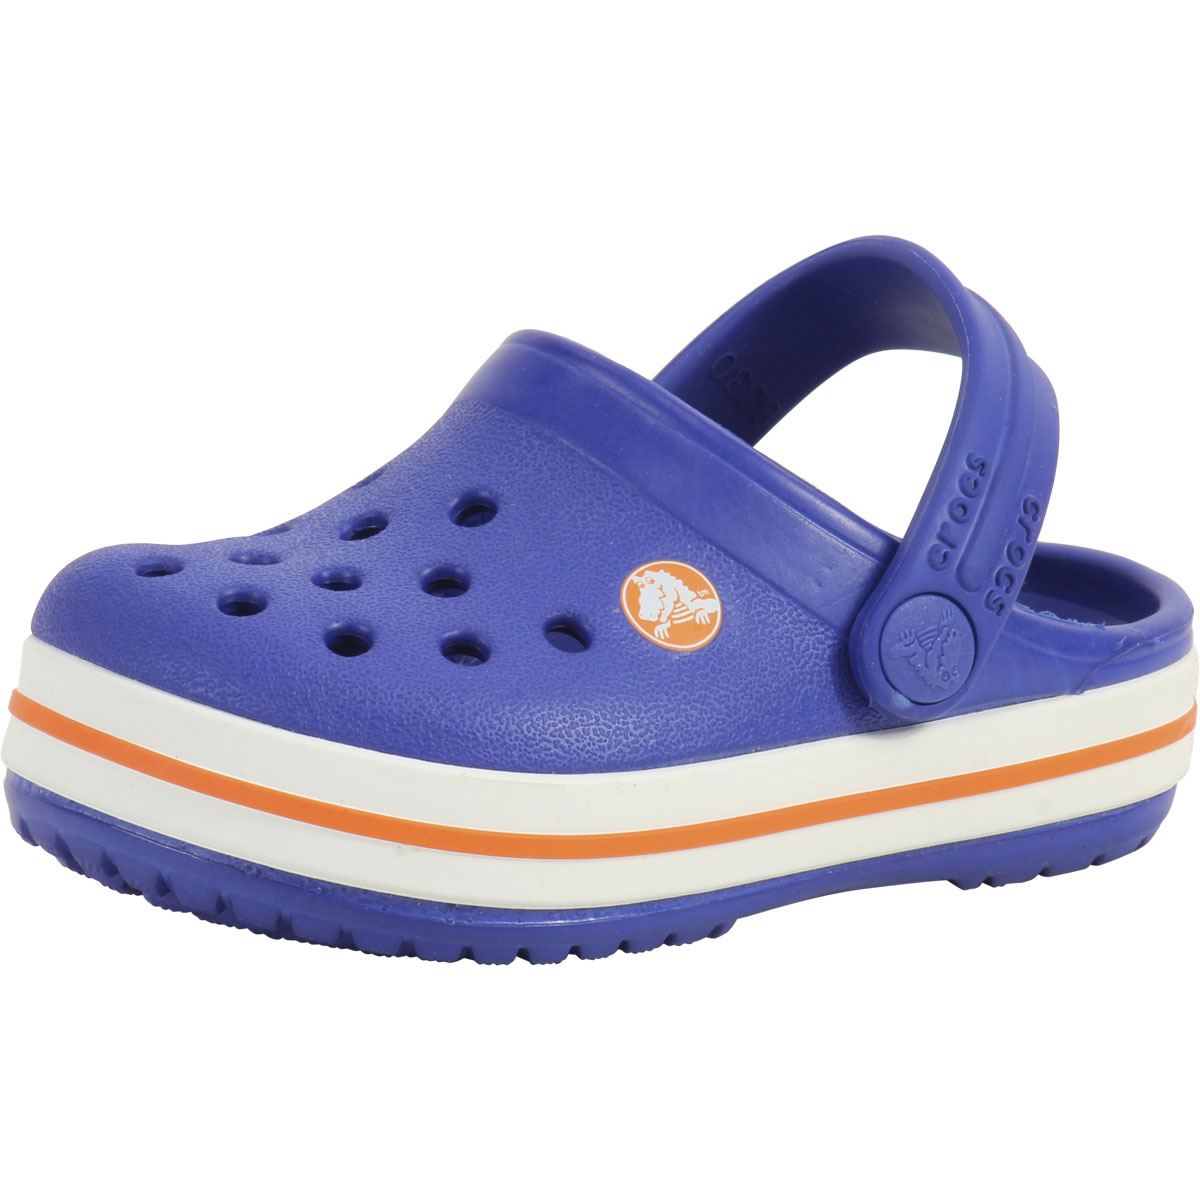 2ecd8f5648 Details about Crocs Toddler Boy's Crocband Cerulean Blue Clogs Sandals Shoes